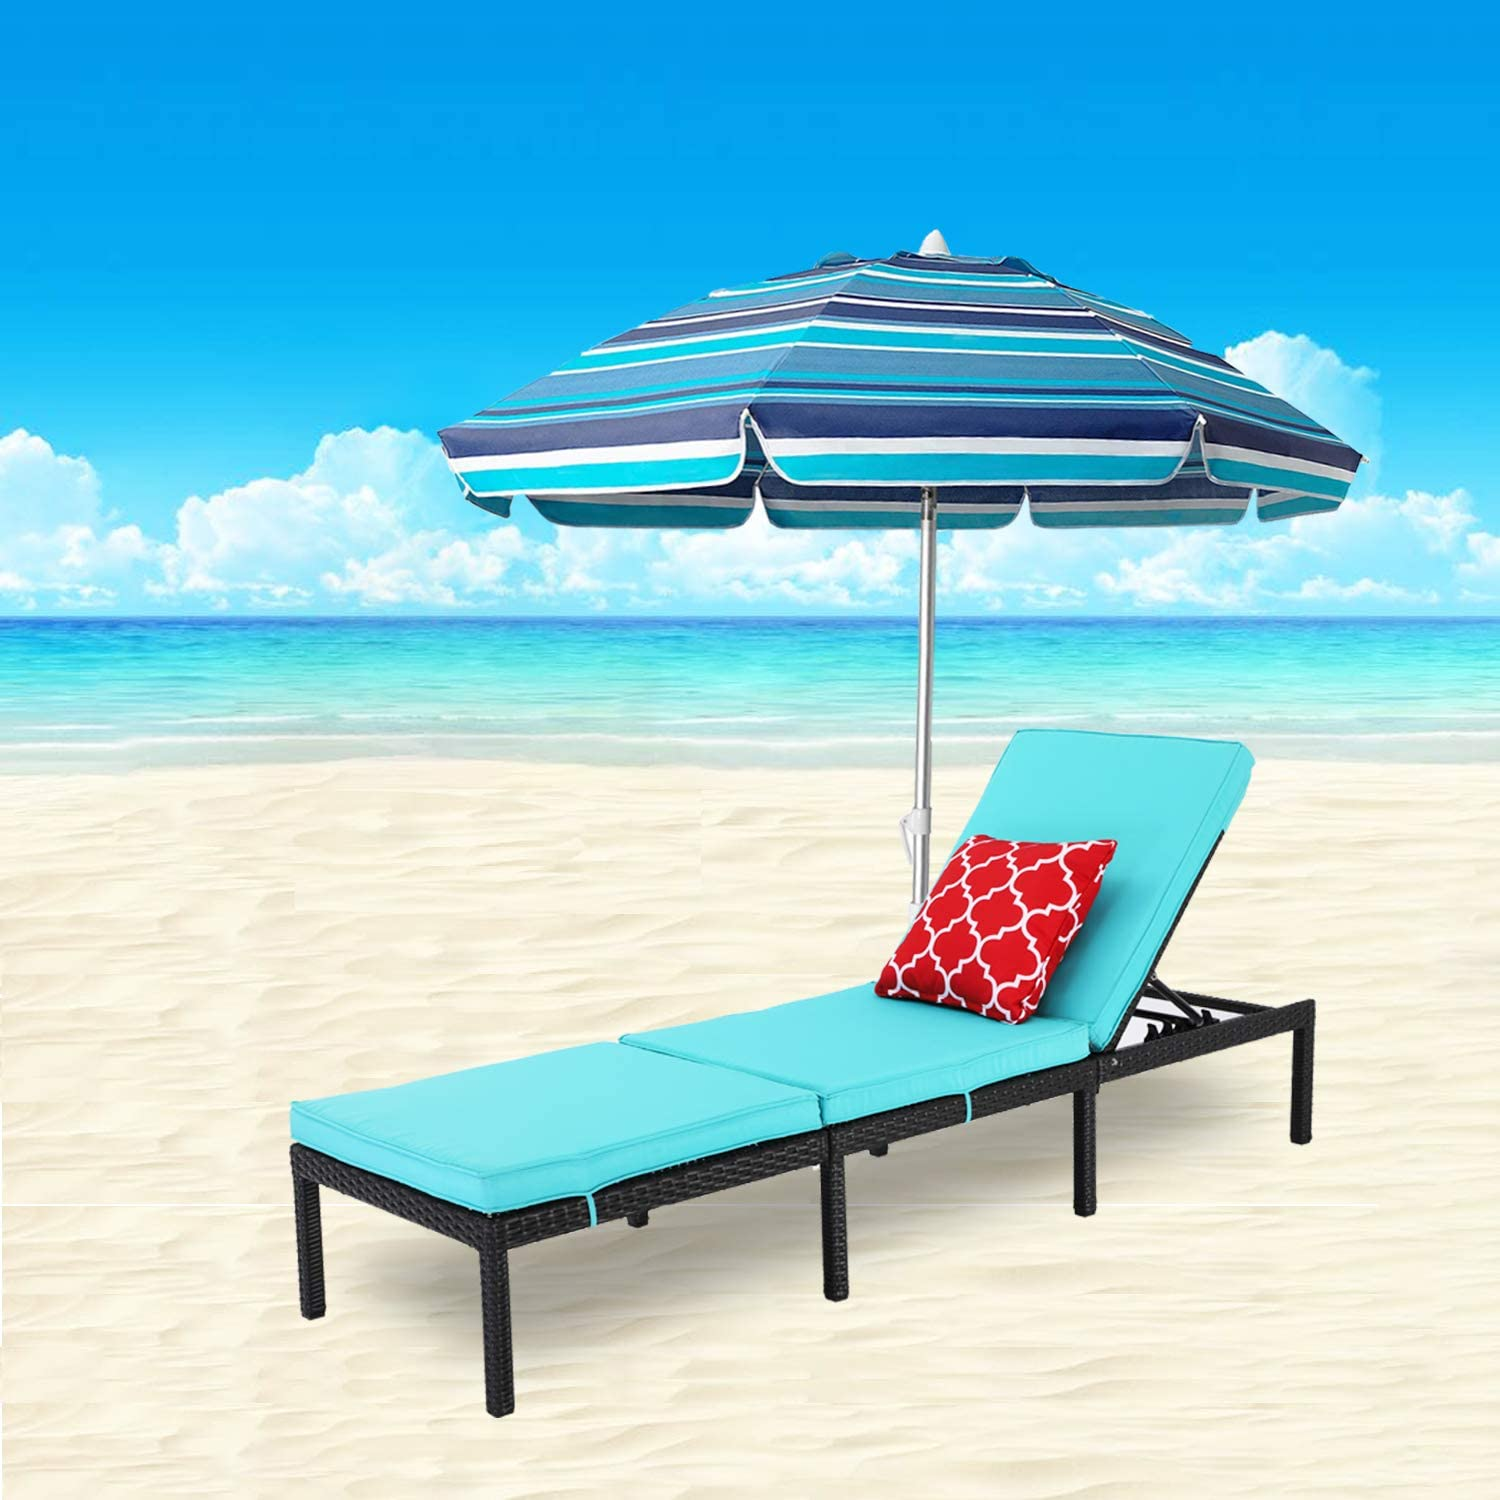 Do4U Outdoor Patio Chaise Lounge Chair- Adjustable Pool Lounge Chair Patio Furniture Wicker Couch Bed with Turquoise Thick Cushion | Expresso Rattan & PE Wicker | Steel Frame (Turquoise)